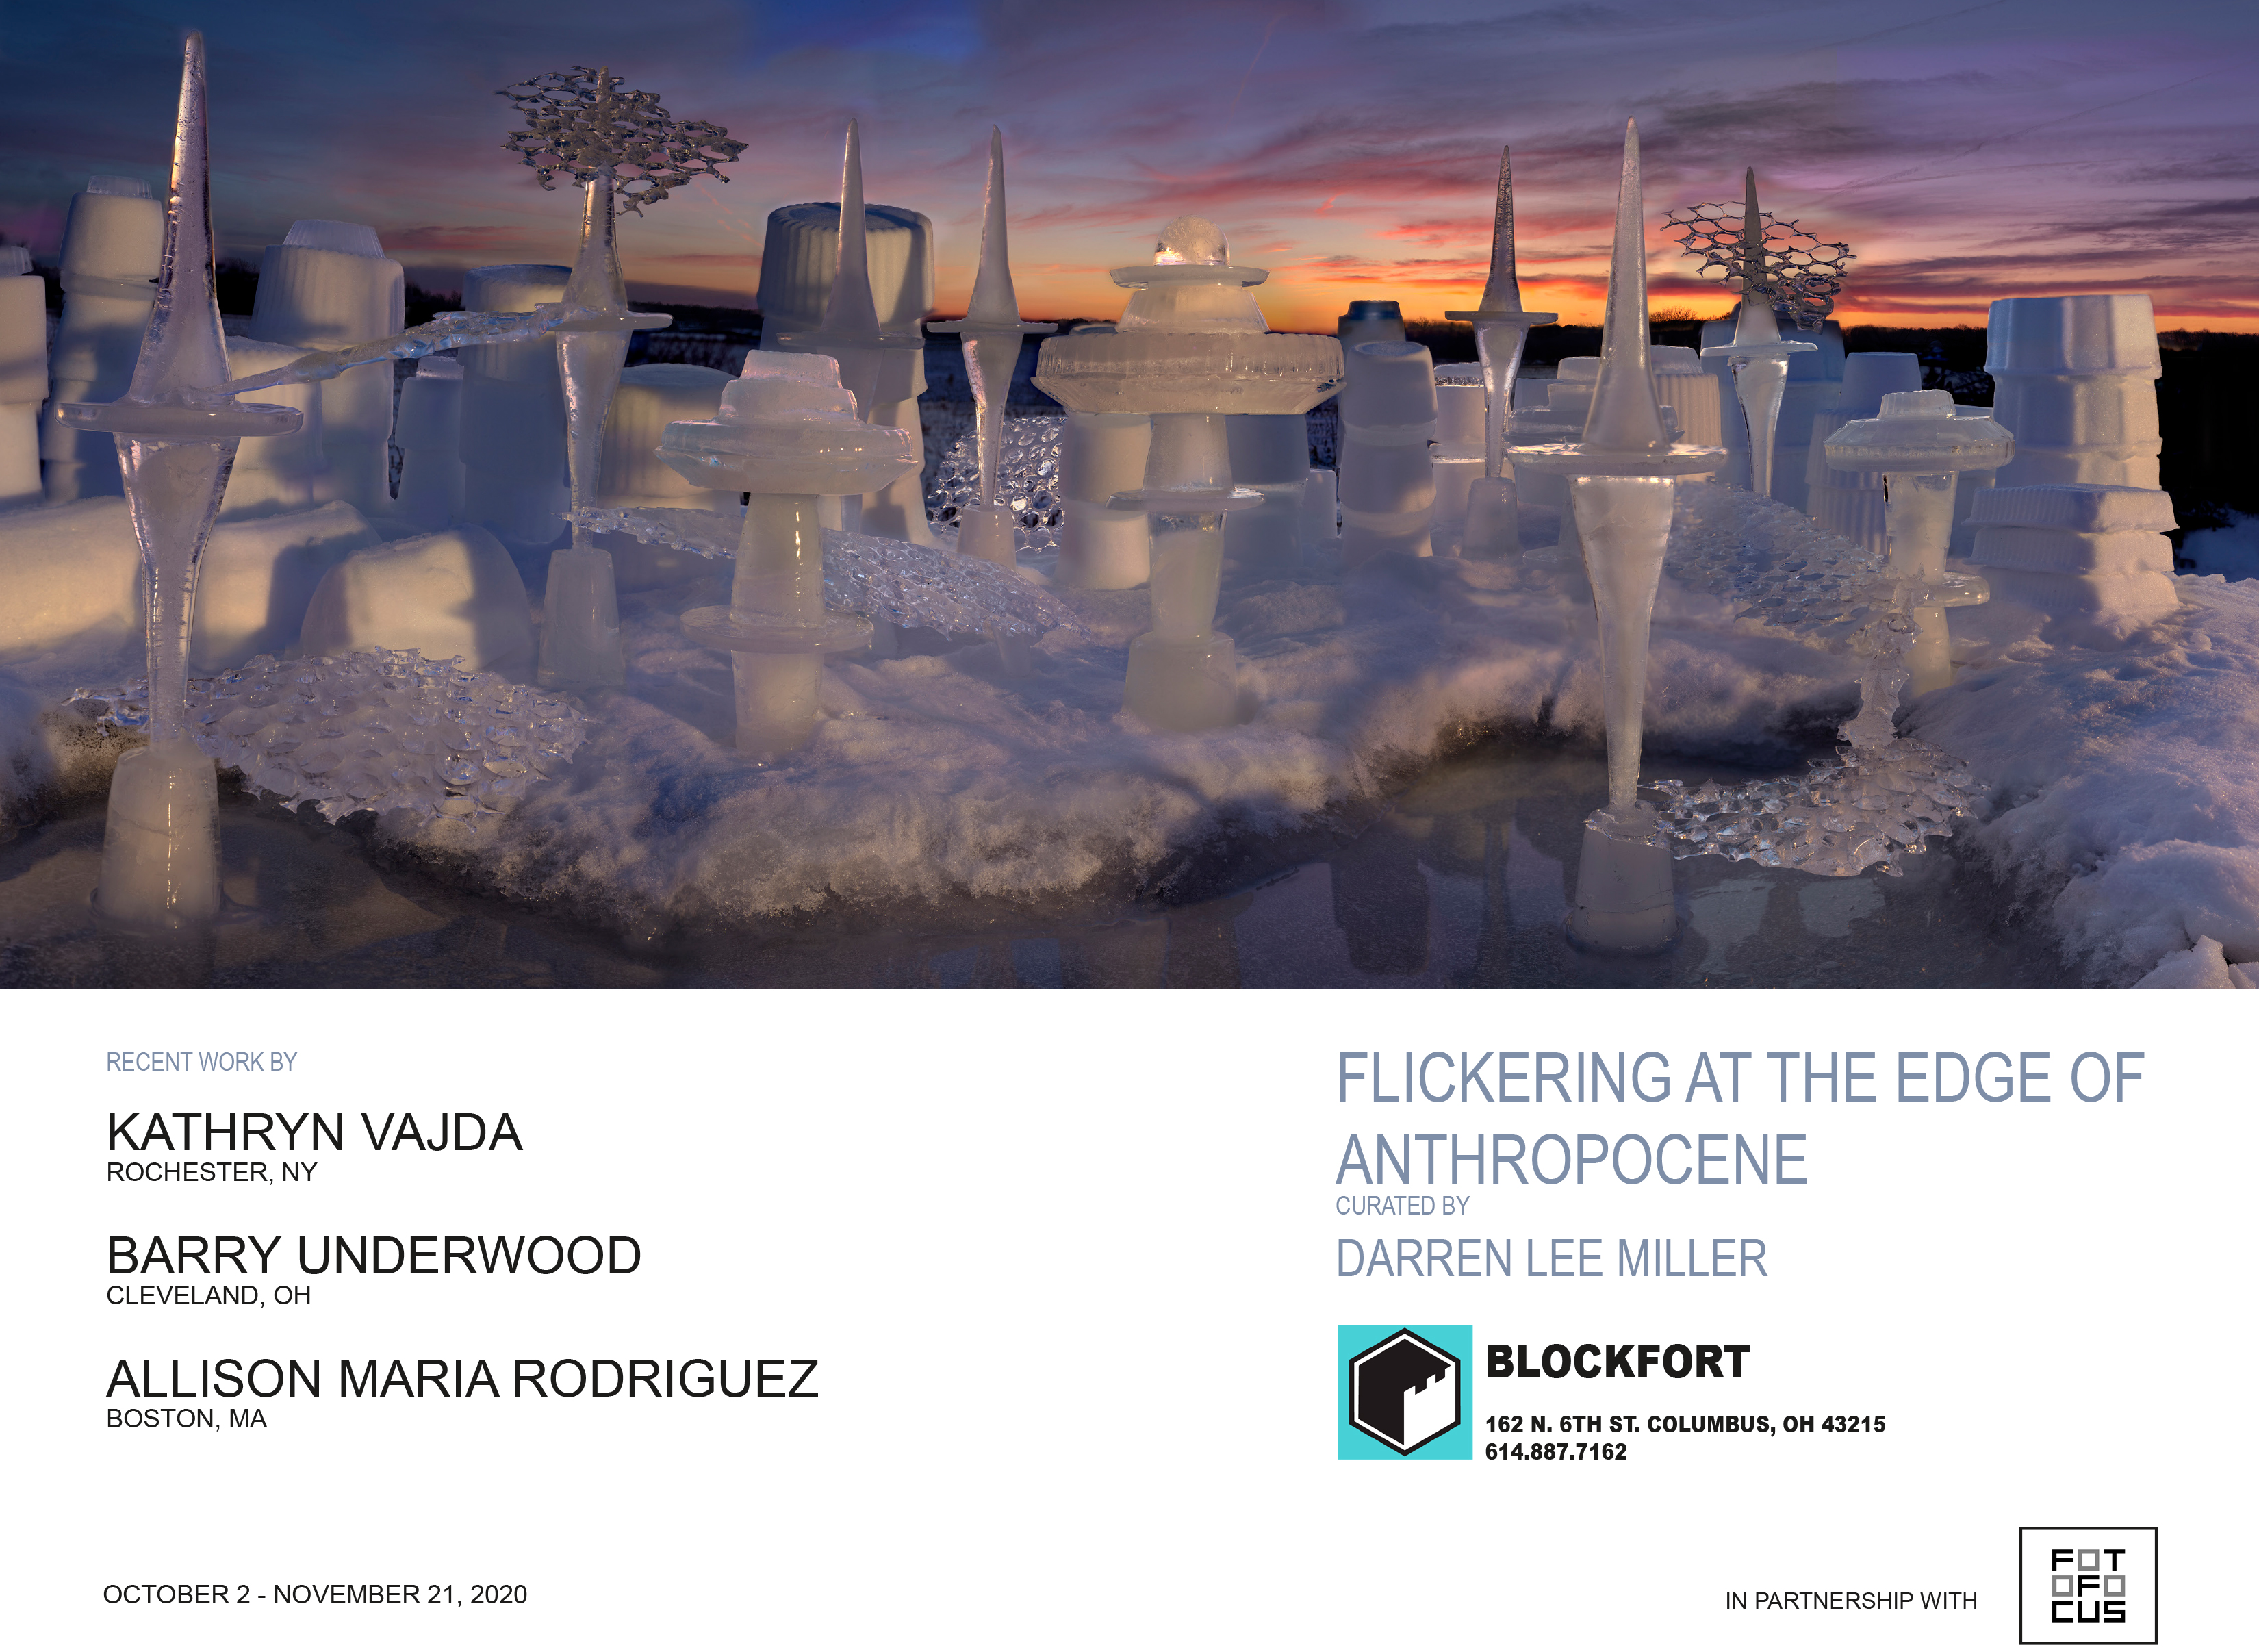 Show card for Flickering at the Edge of Anthropocene Curated by Darren Lee Miller for Blockfort, in Columbus OH, October 2-November 21, 2020.